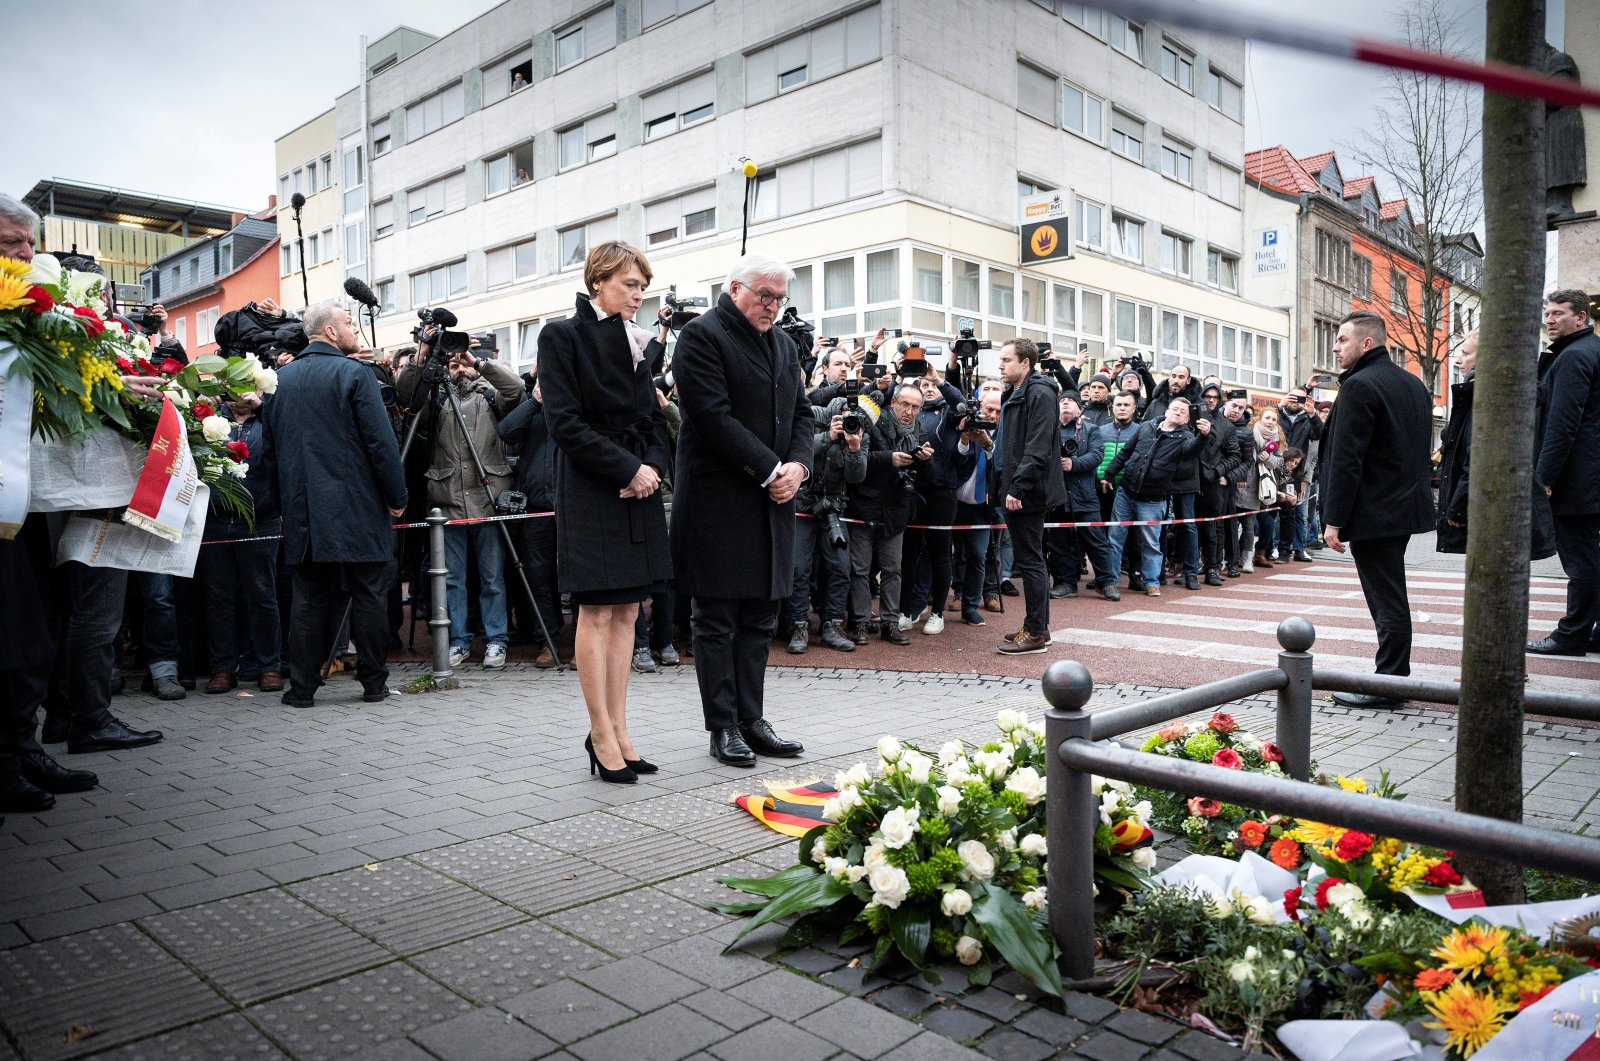 German President Frank-Walter Steinmeier and his wife Elke Budenbender pay respect to victims of a shooting in Hanau, near Frankfurt, Germany, February 20, 2020. (REUTERS Photo)